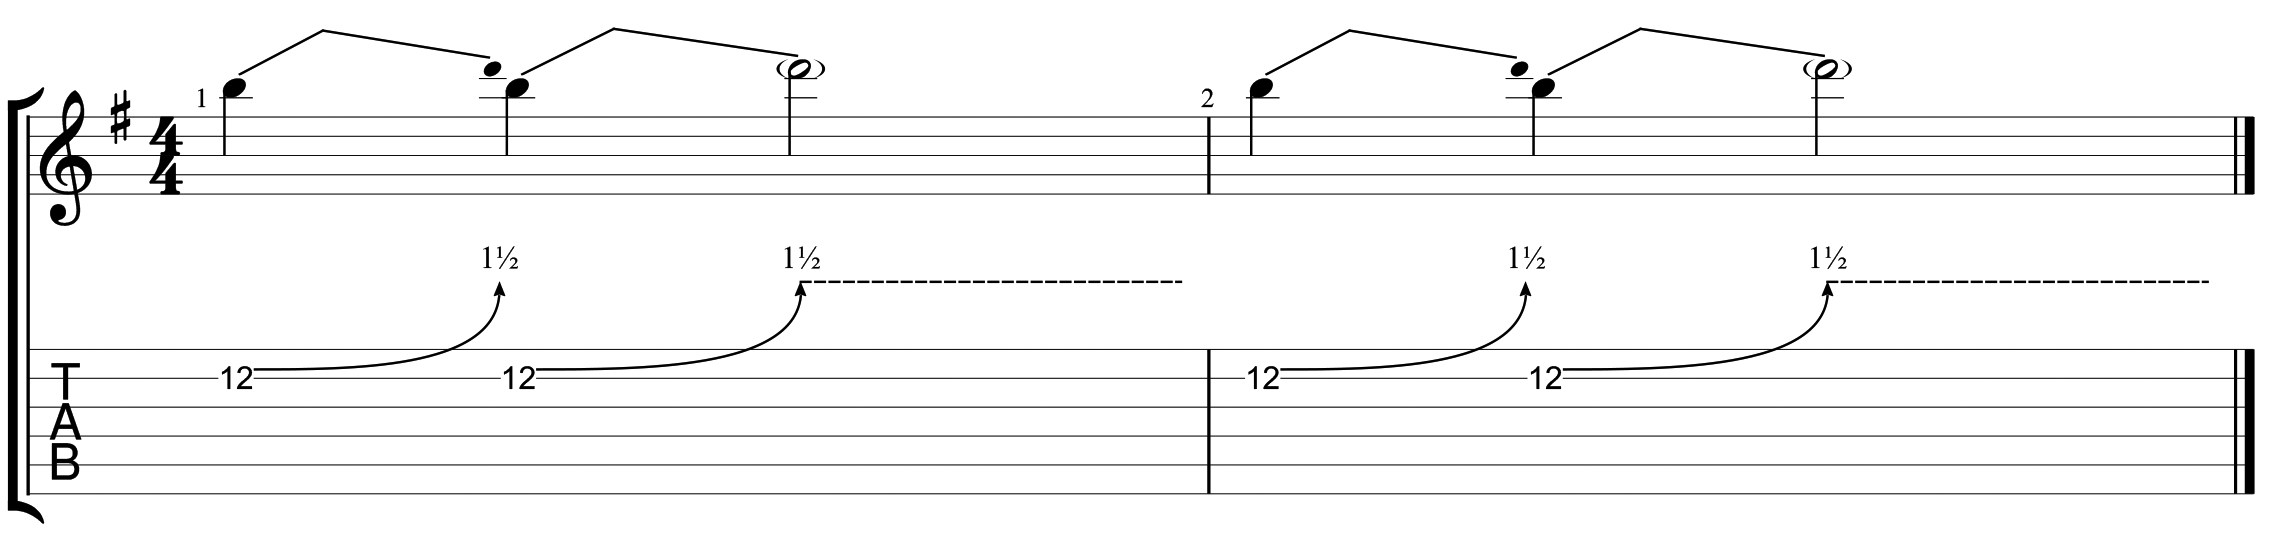 How to read guitar tablature 12